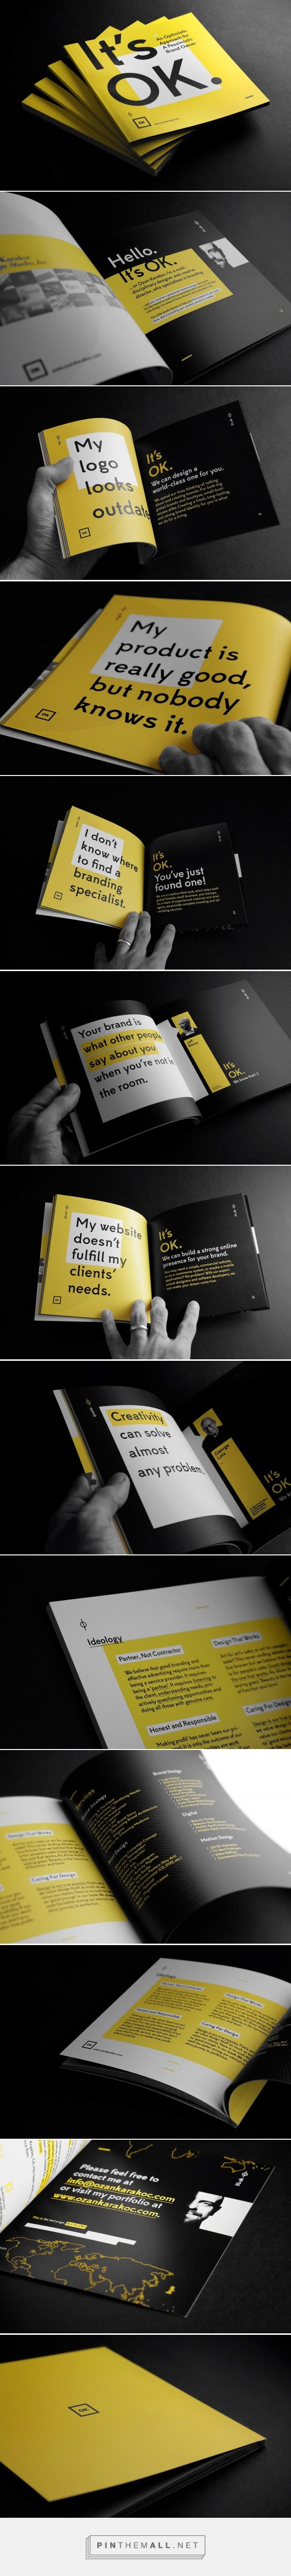 It's OK | Branding Booklet by Ozan Karakoc